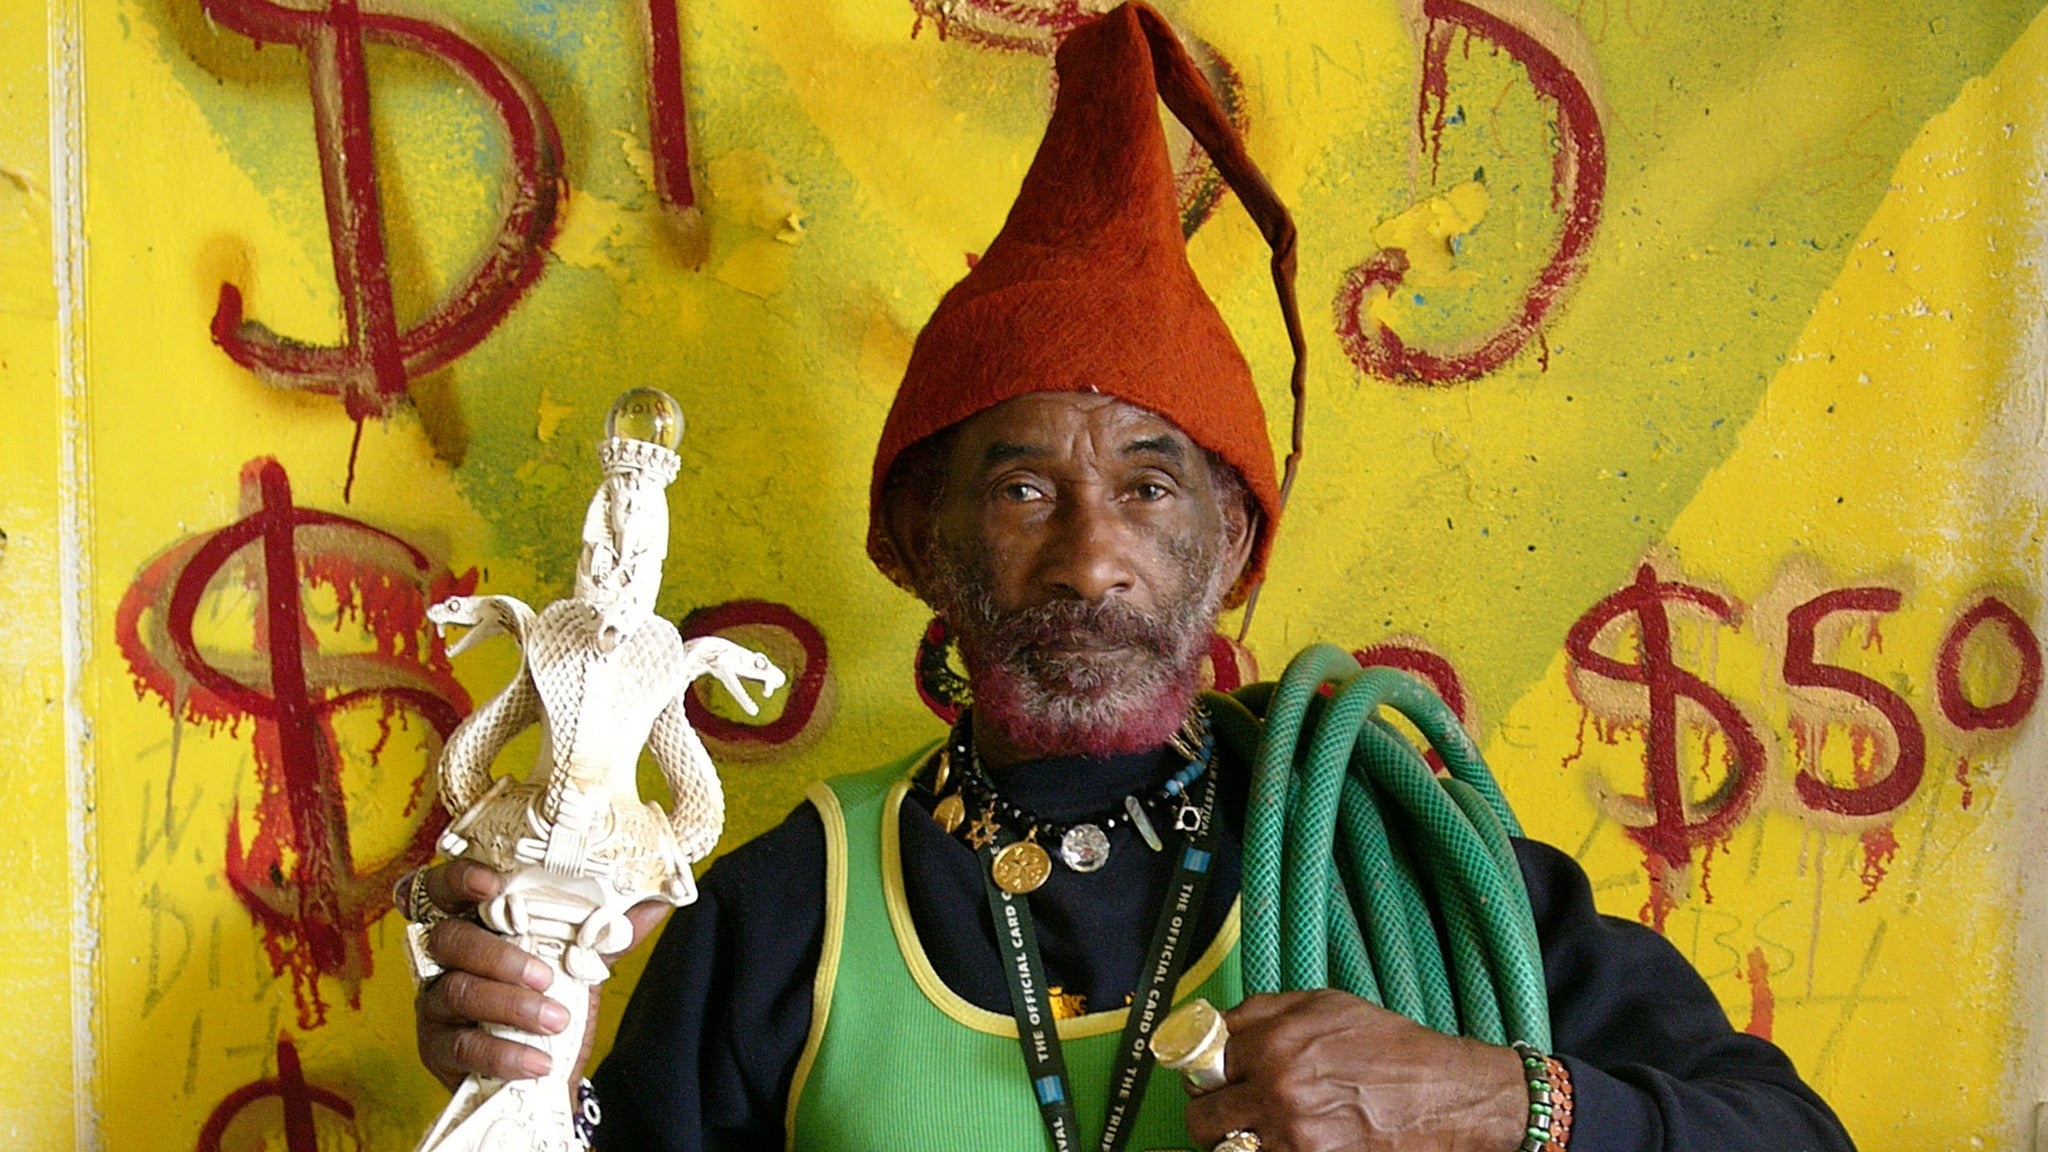 Lee Scratch Perry at State Theatre